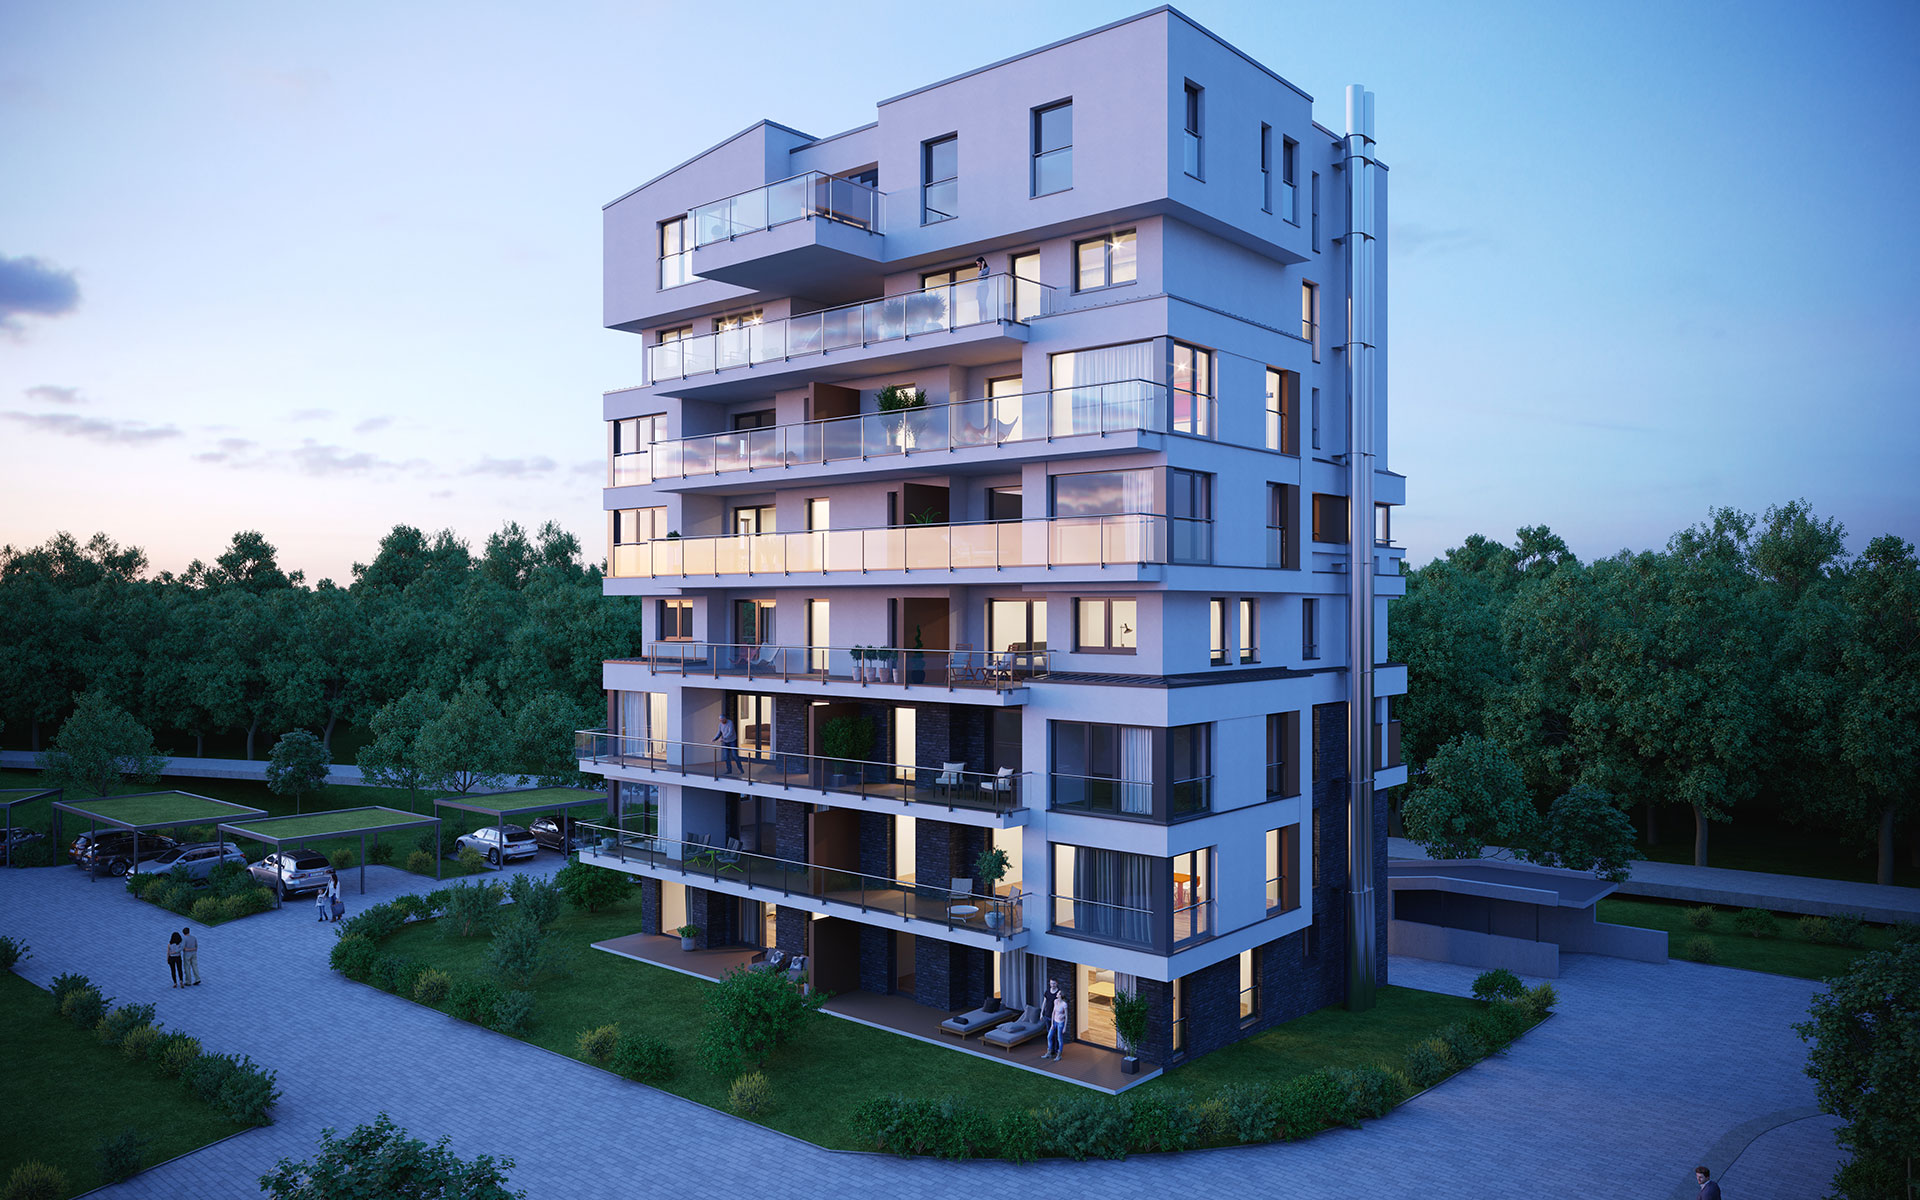 OPUS Marketing / Immobilienmarketing / hugo49 Bayreuth / Visualisierung / Aussenrendering